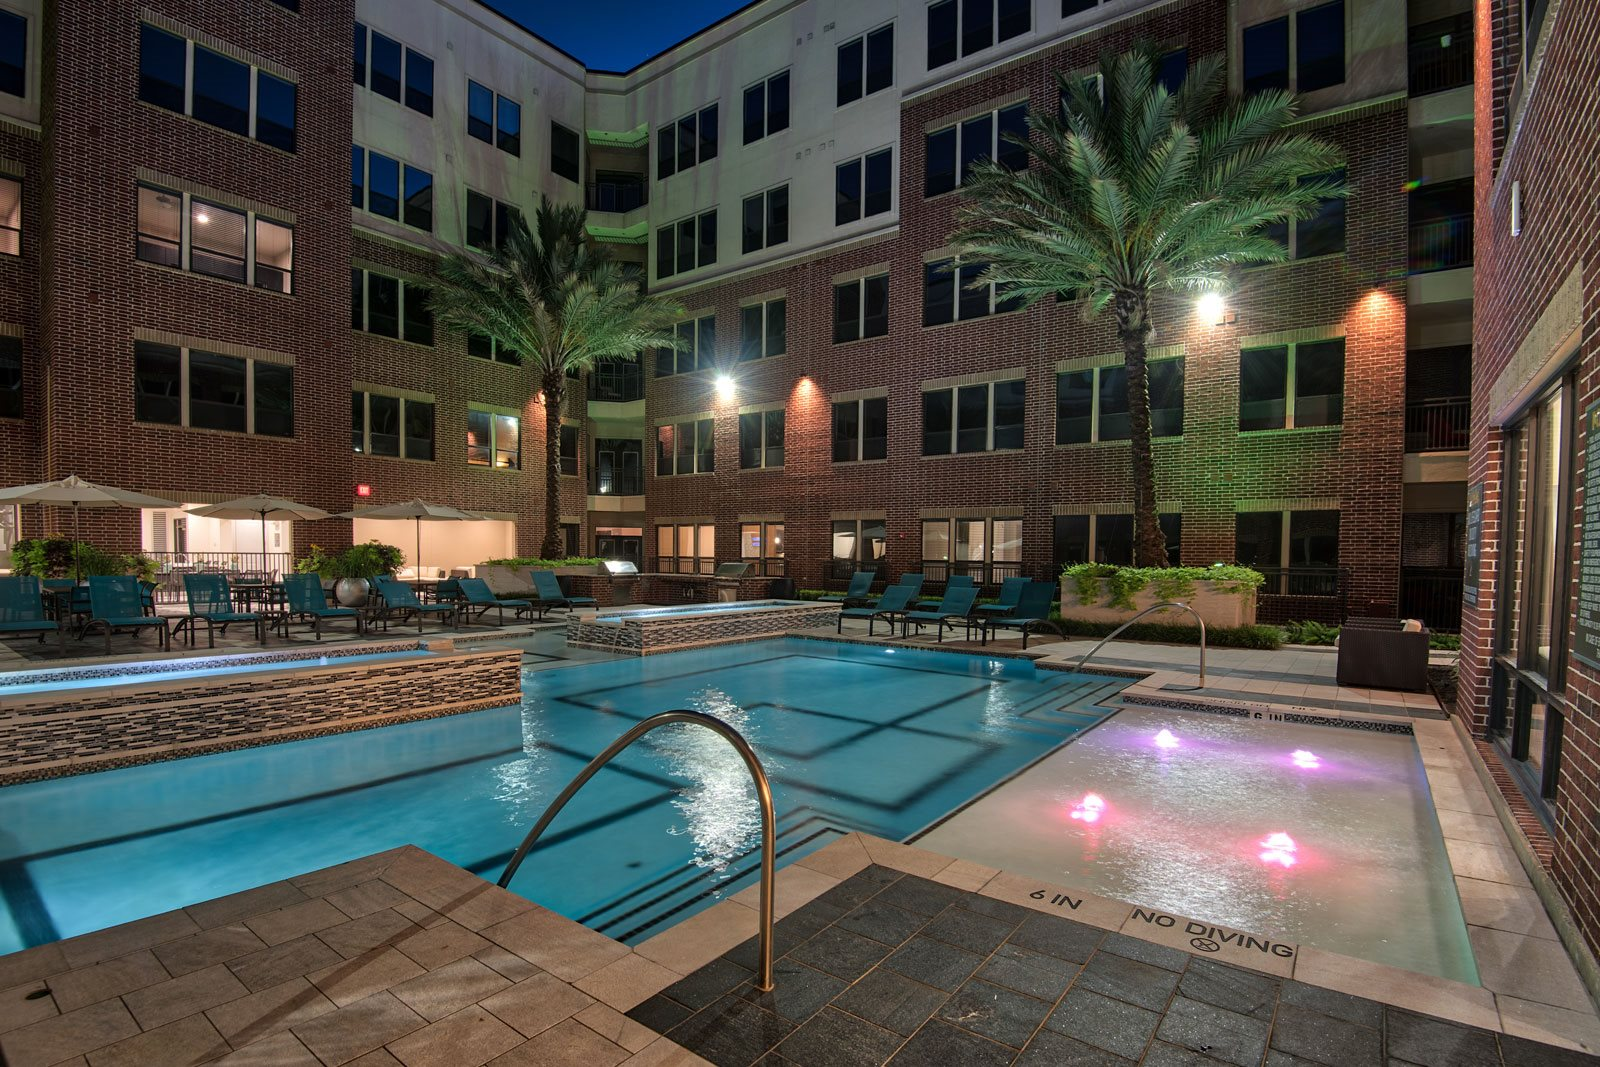 Pool lit up at night at Midtown Houston by Windsor, 2310 Main Street, Houston